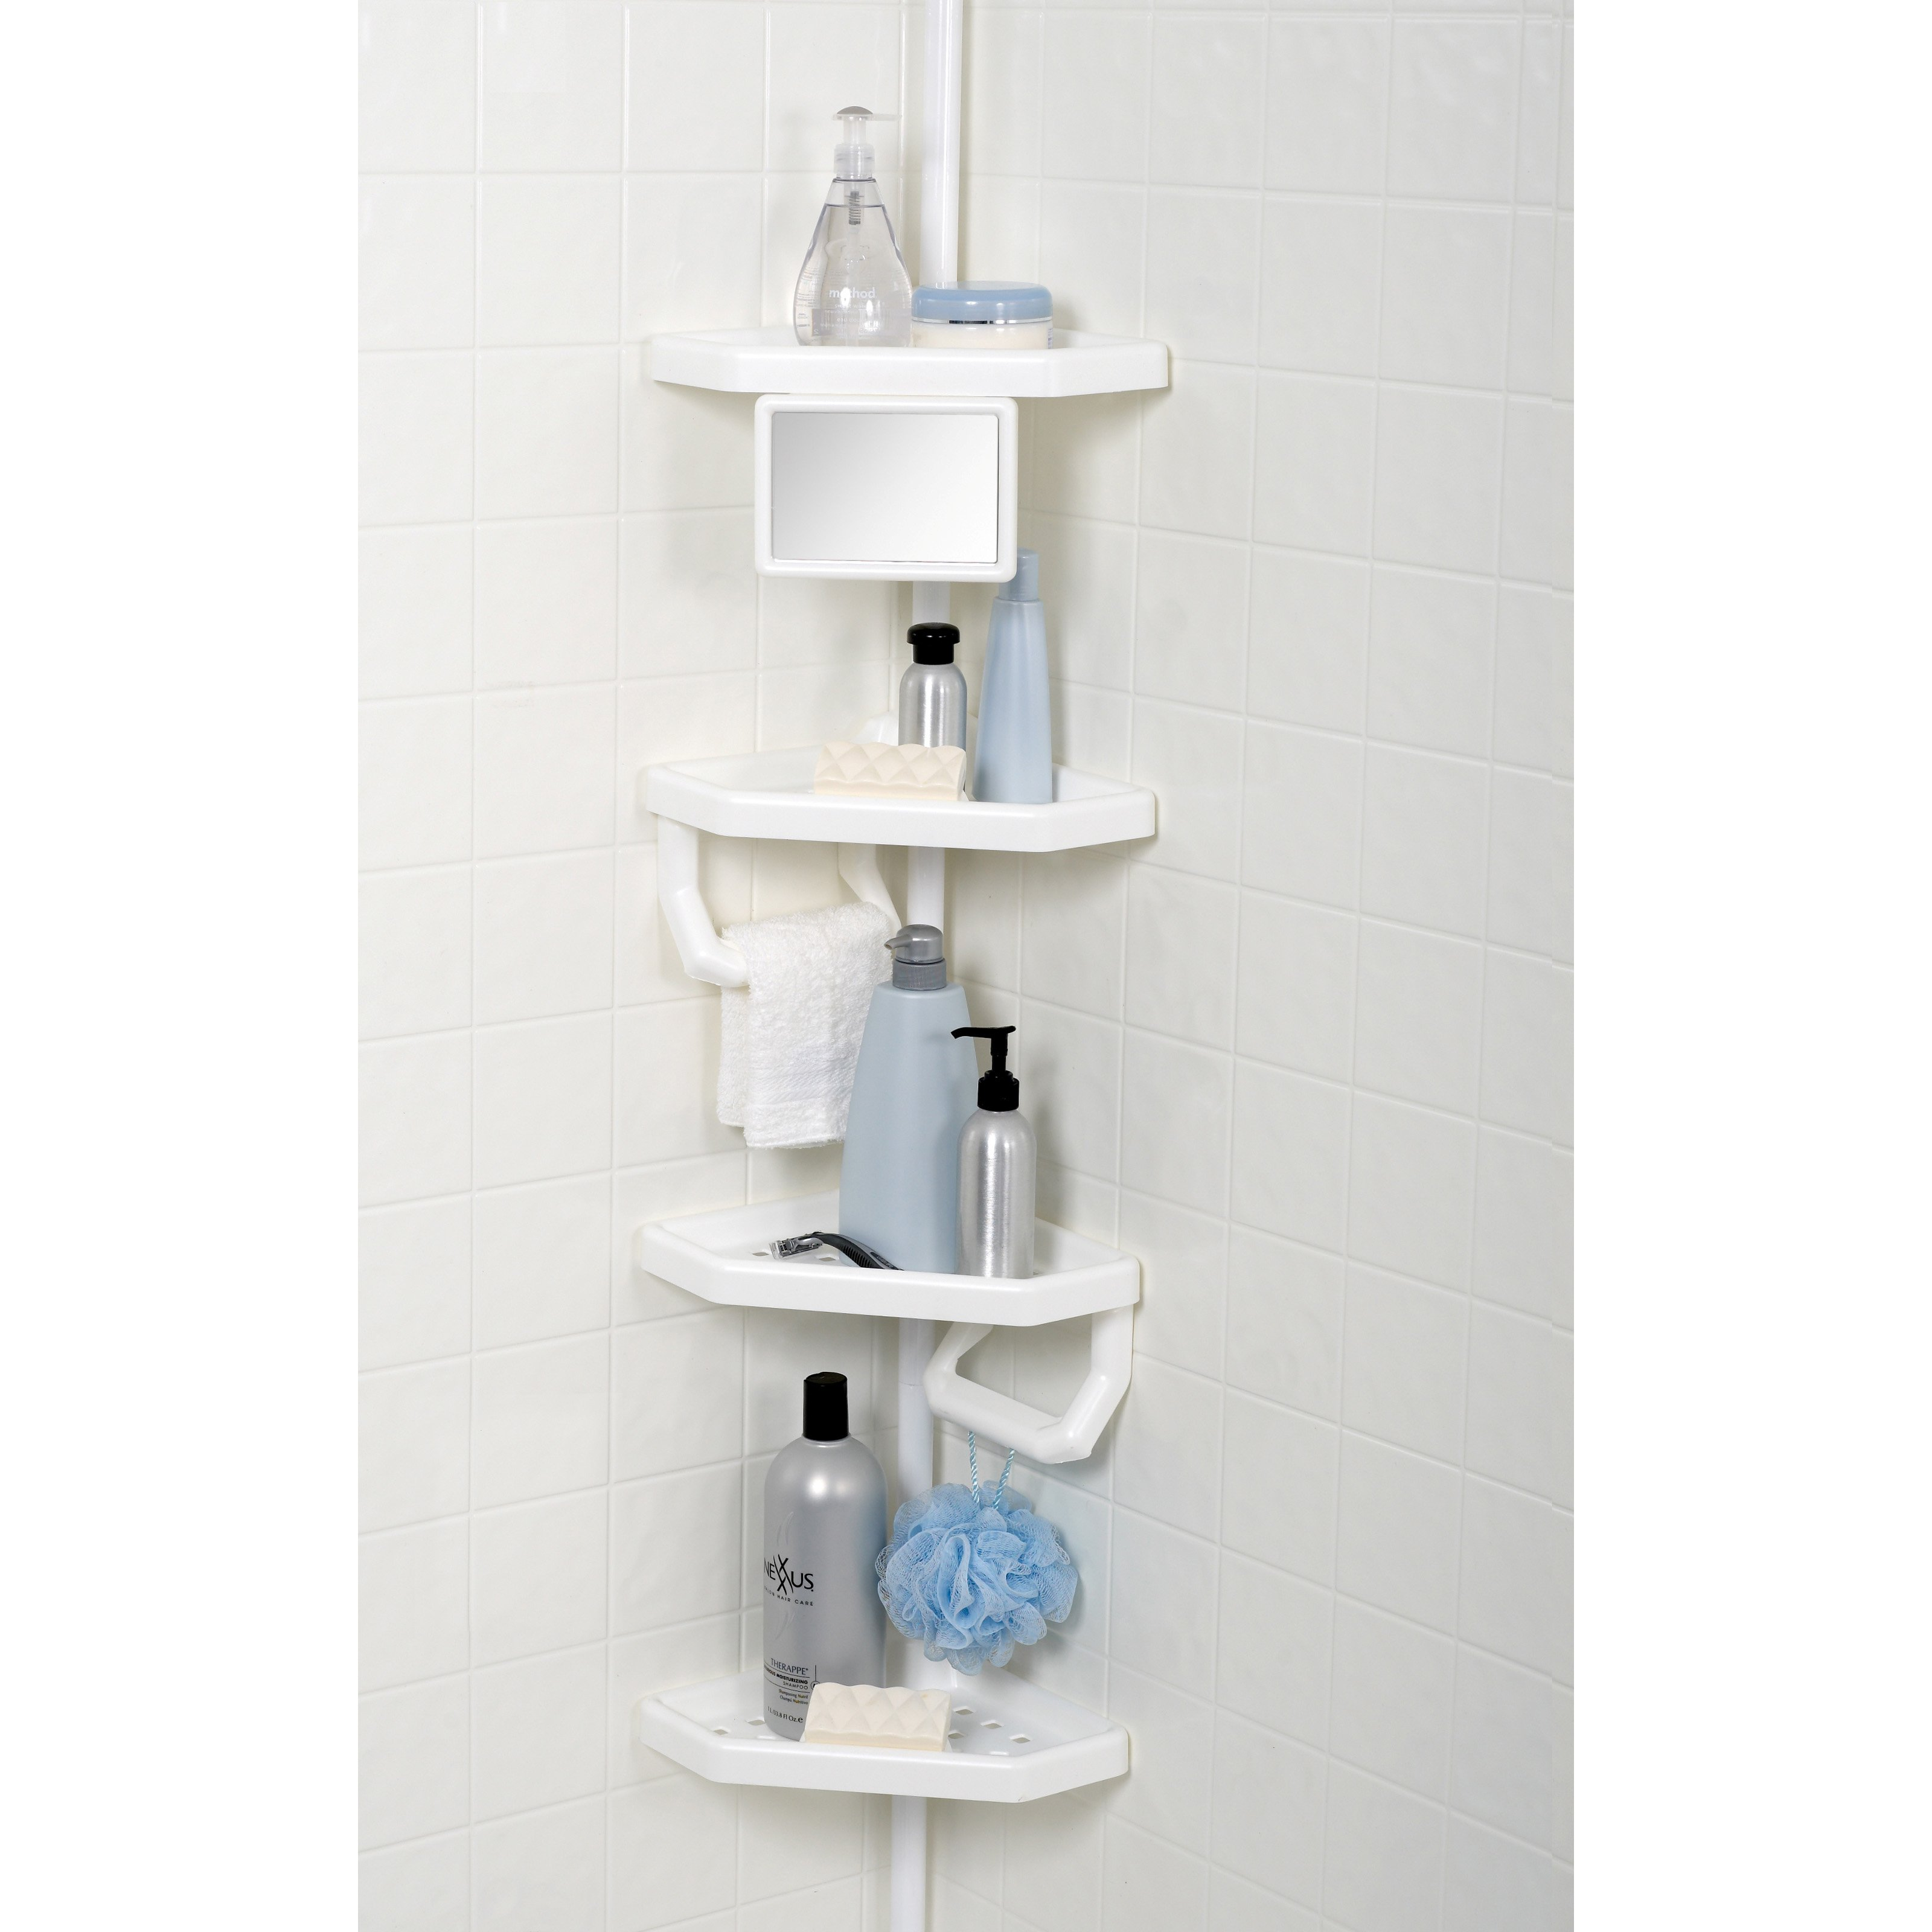 Tension Pole Corner Shower Caddy white with mirror tub and shower tension pole caddy - walmart